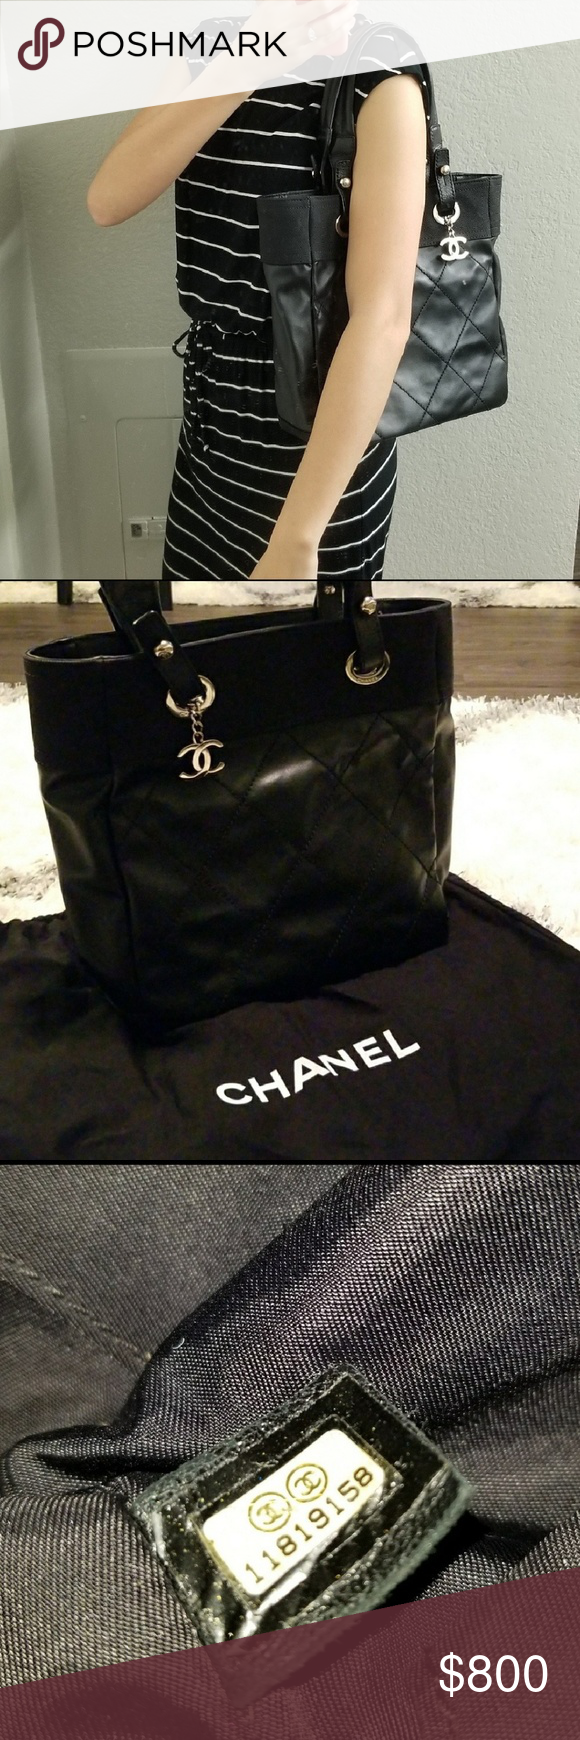 ef1d1e03706d Chanel Small Paris-Biarritz Tote Black quilted coated canvas Chanel Medium  Paris-Biarritz tote